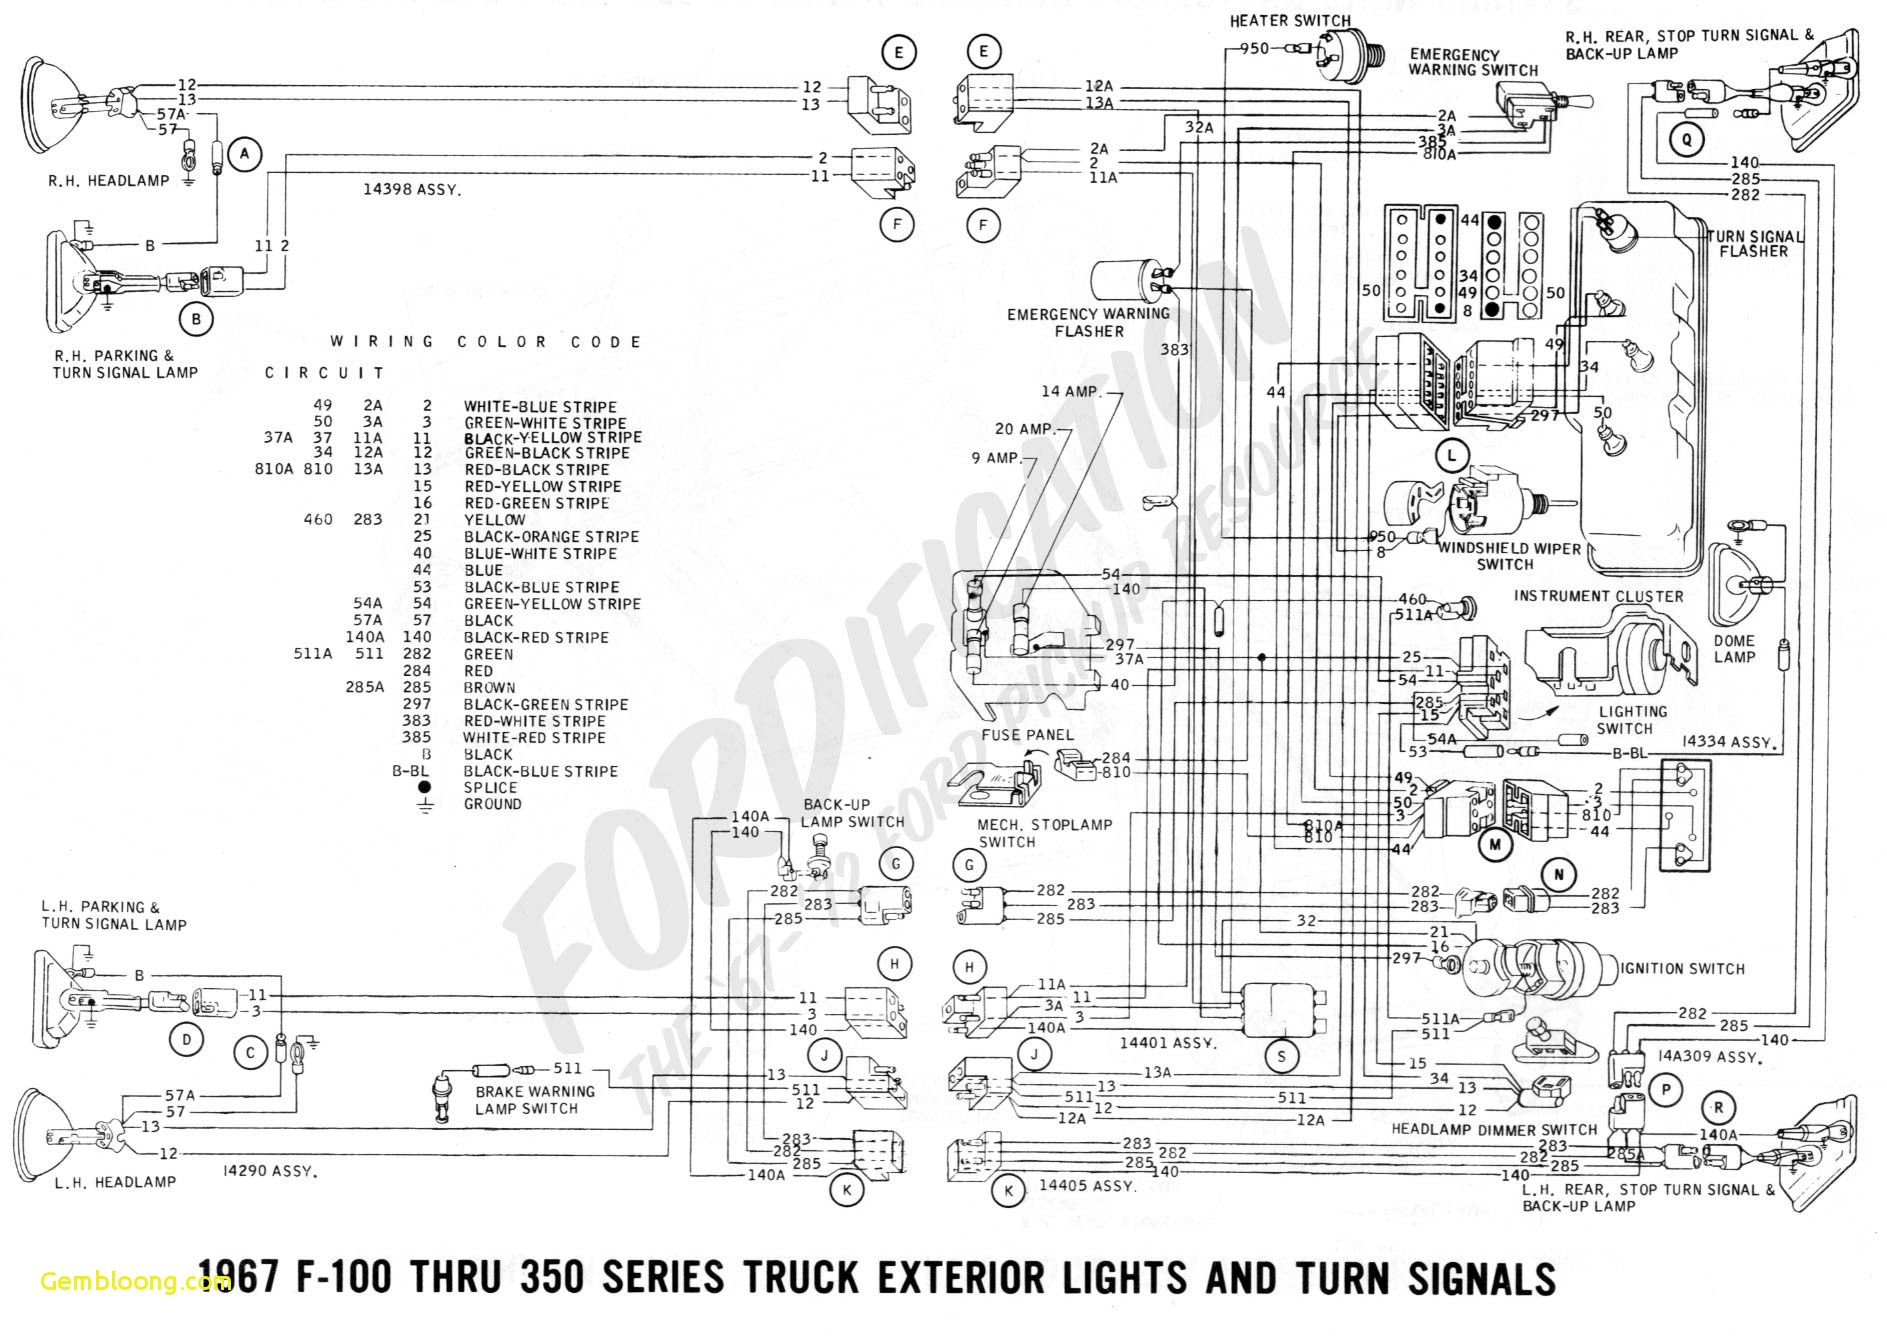 Truck Drivetrain Diagram Download ford Trucks Wiring Diagrams ford F150 Wiring Diagrams Best Of Truck Drivetrain Diagram Download ford Trucks Wiring Diagrams ford F150 Wiring Diagrams Best